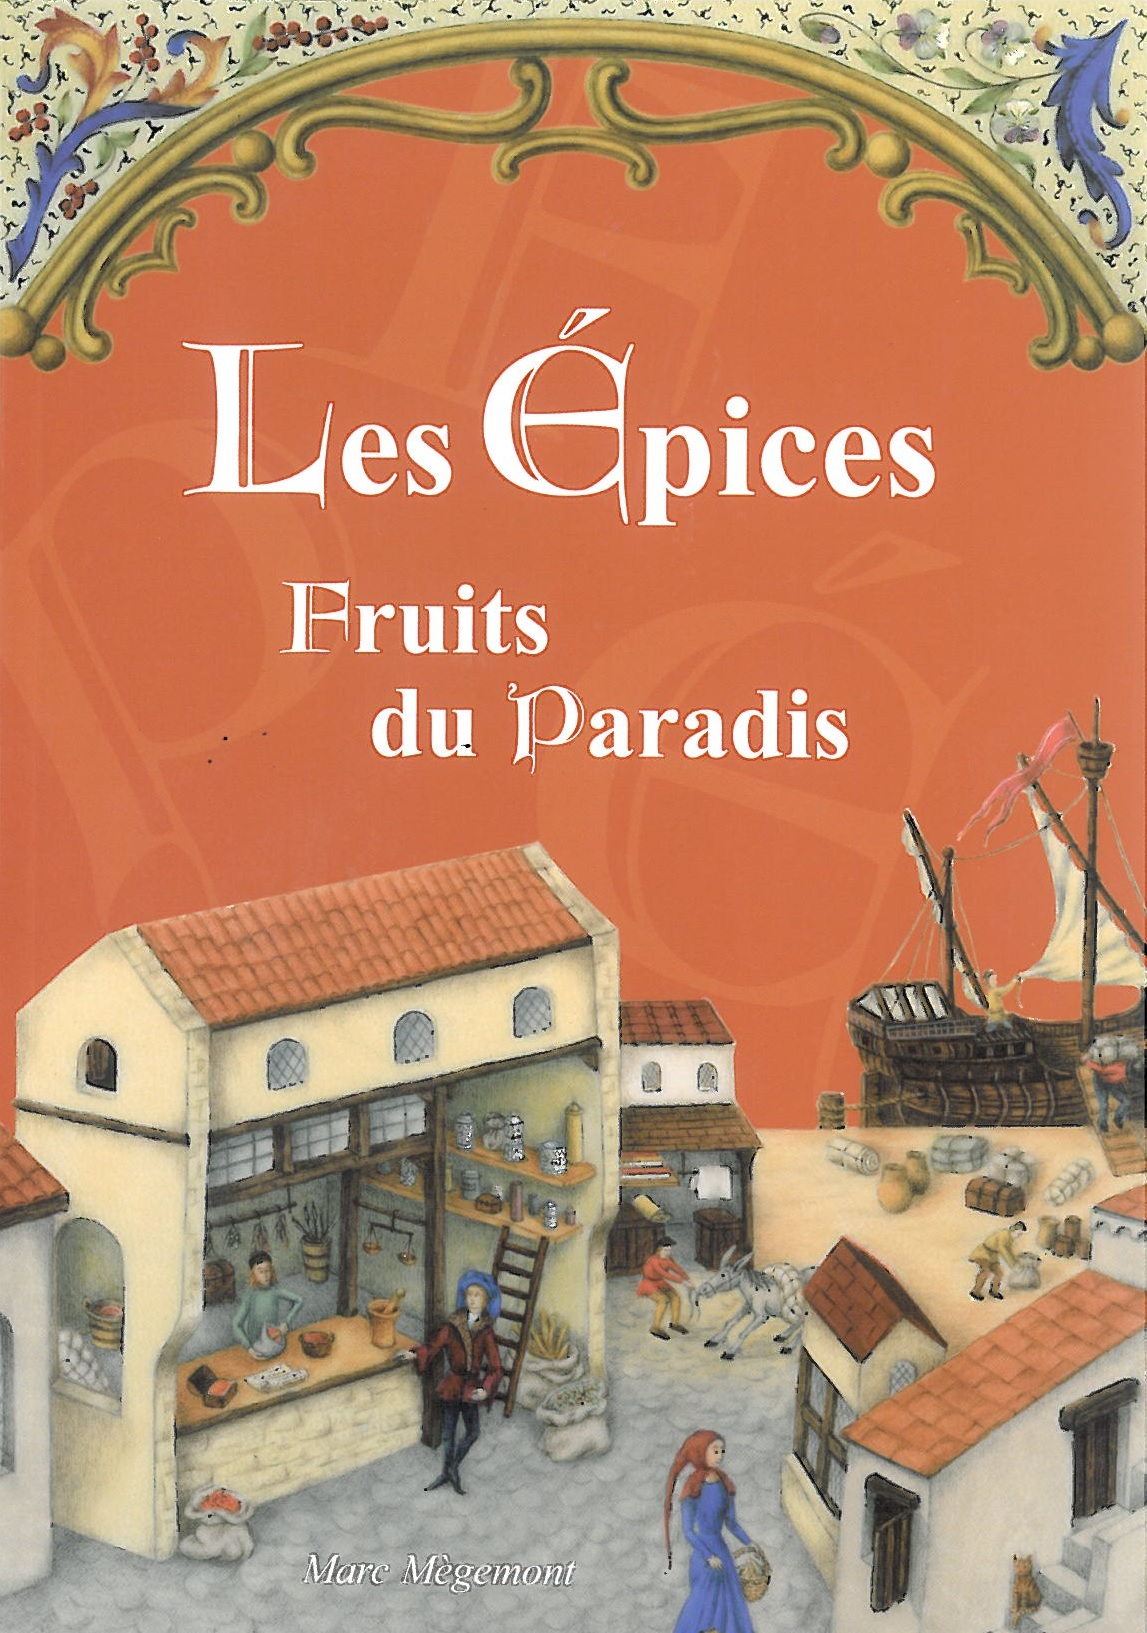 Les Epices Fruits du Paradis.jpg